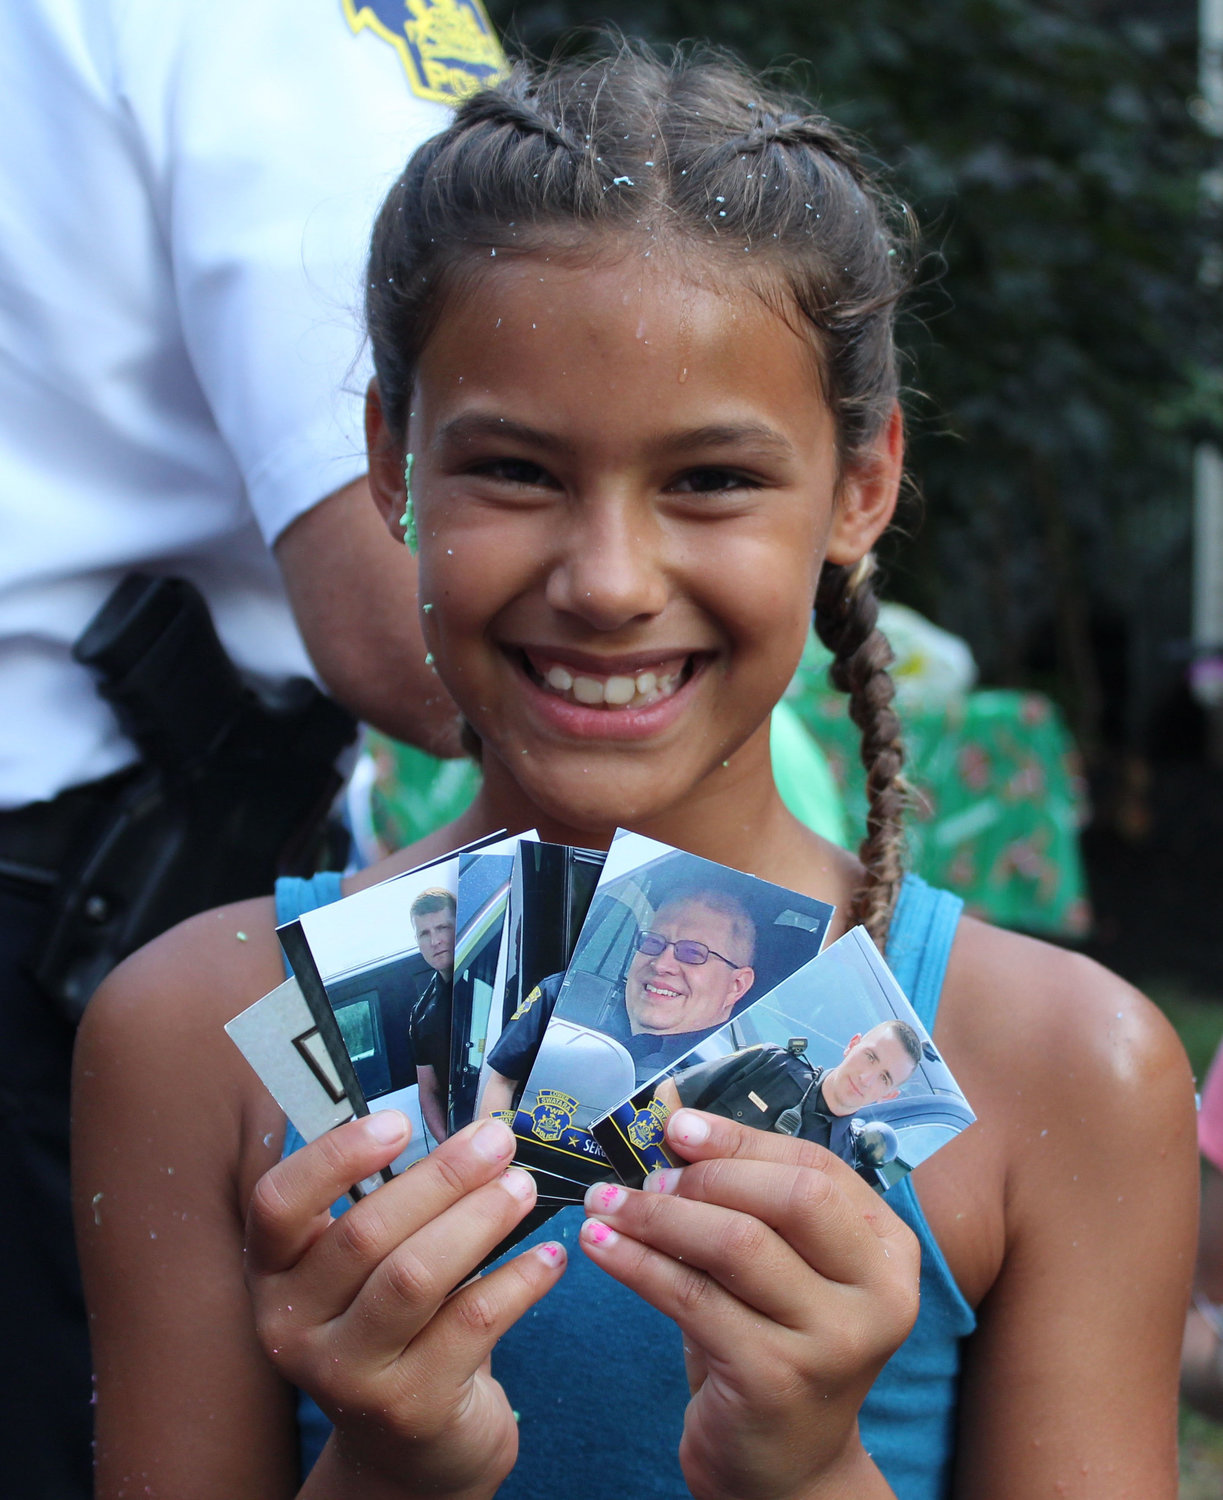 Safia Aman has collected almost all of the Lower Swatara police officers' baseball cards and showed them off during National Night Out in Lower Swatara on Aug. 6.